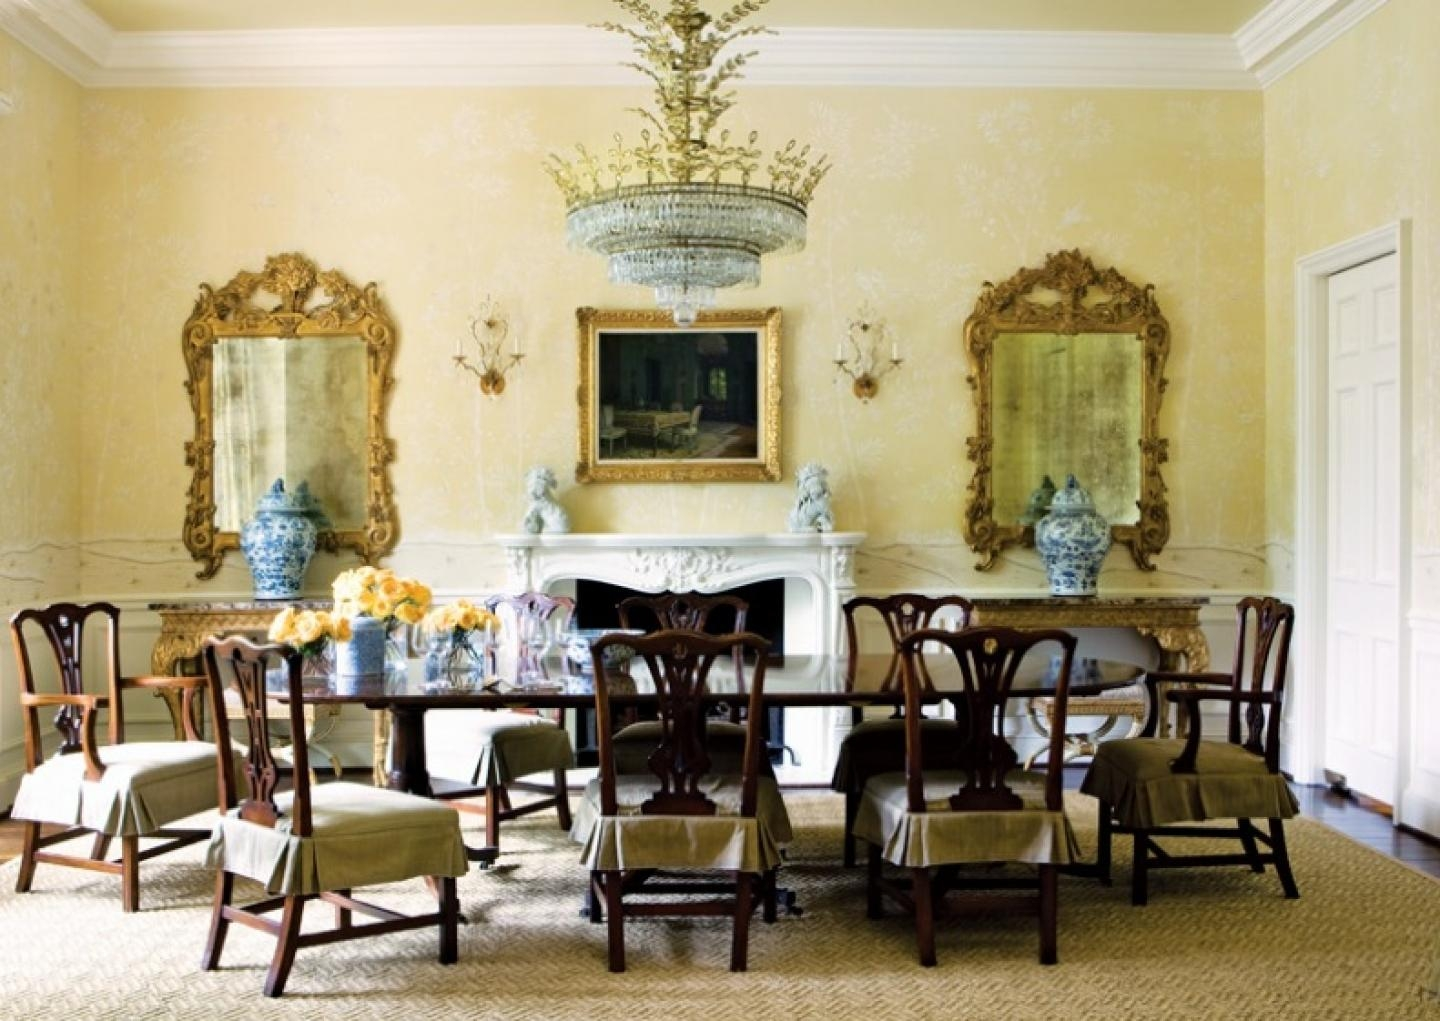 20 collection of formal dining room wall art wall art ideas for Dining room wall art images